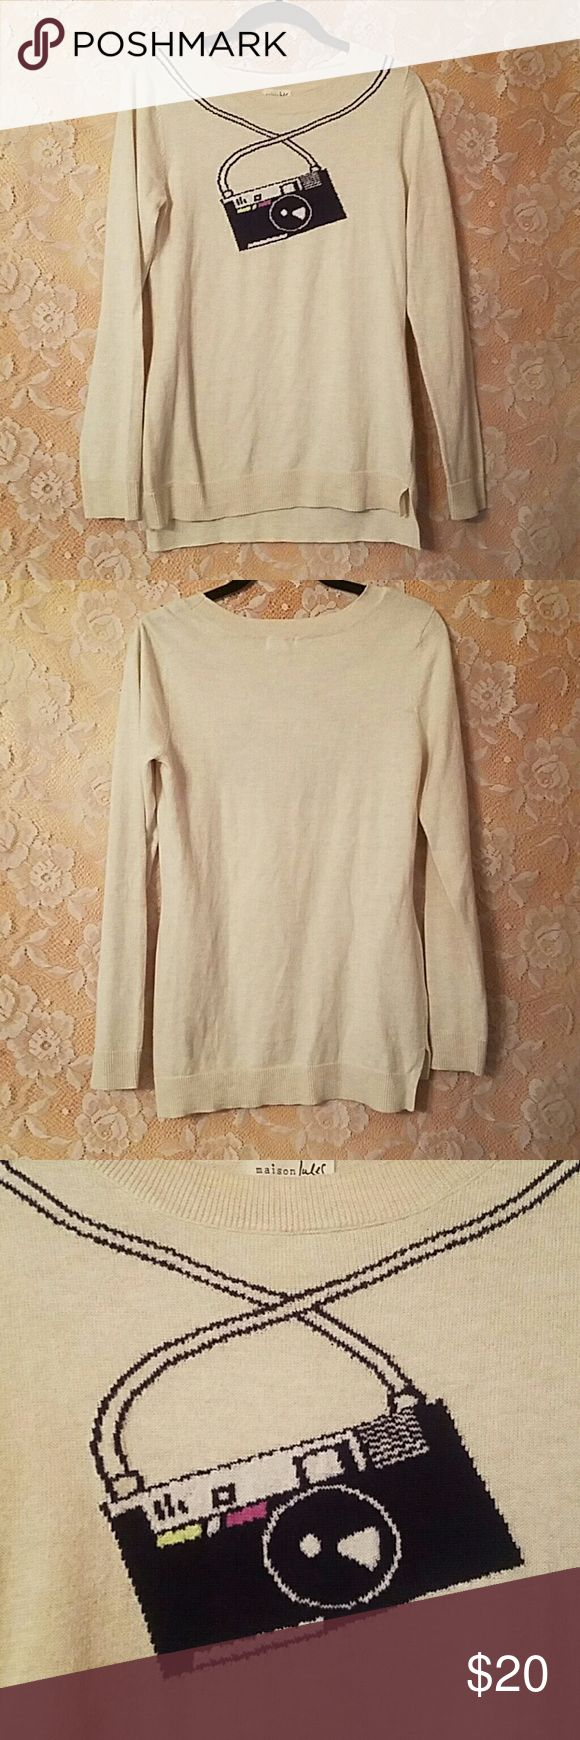 """MAISON JULES SWEATER CAMERA BEIGE SIZE M Maison Jules Cream/ beige sweater withCamera motiff Size Medium  Be a tourist with this fun sweater! In great condition, some minor pilling due to washing  Camera is Dark Navy color 60% cotton 40% polyester  Armpit to armpit- 16.5"""" Waist- 15.5"""" Sleeve length- 25"""" Length- 24.5"""" in front, 26"""" in back Maison Jules Sweaters Crew & Scoop Necks"""